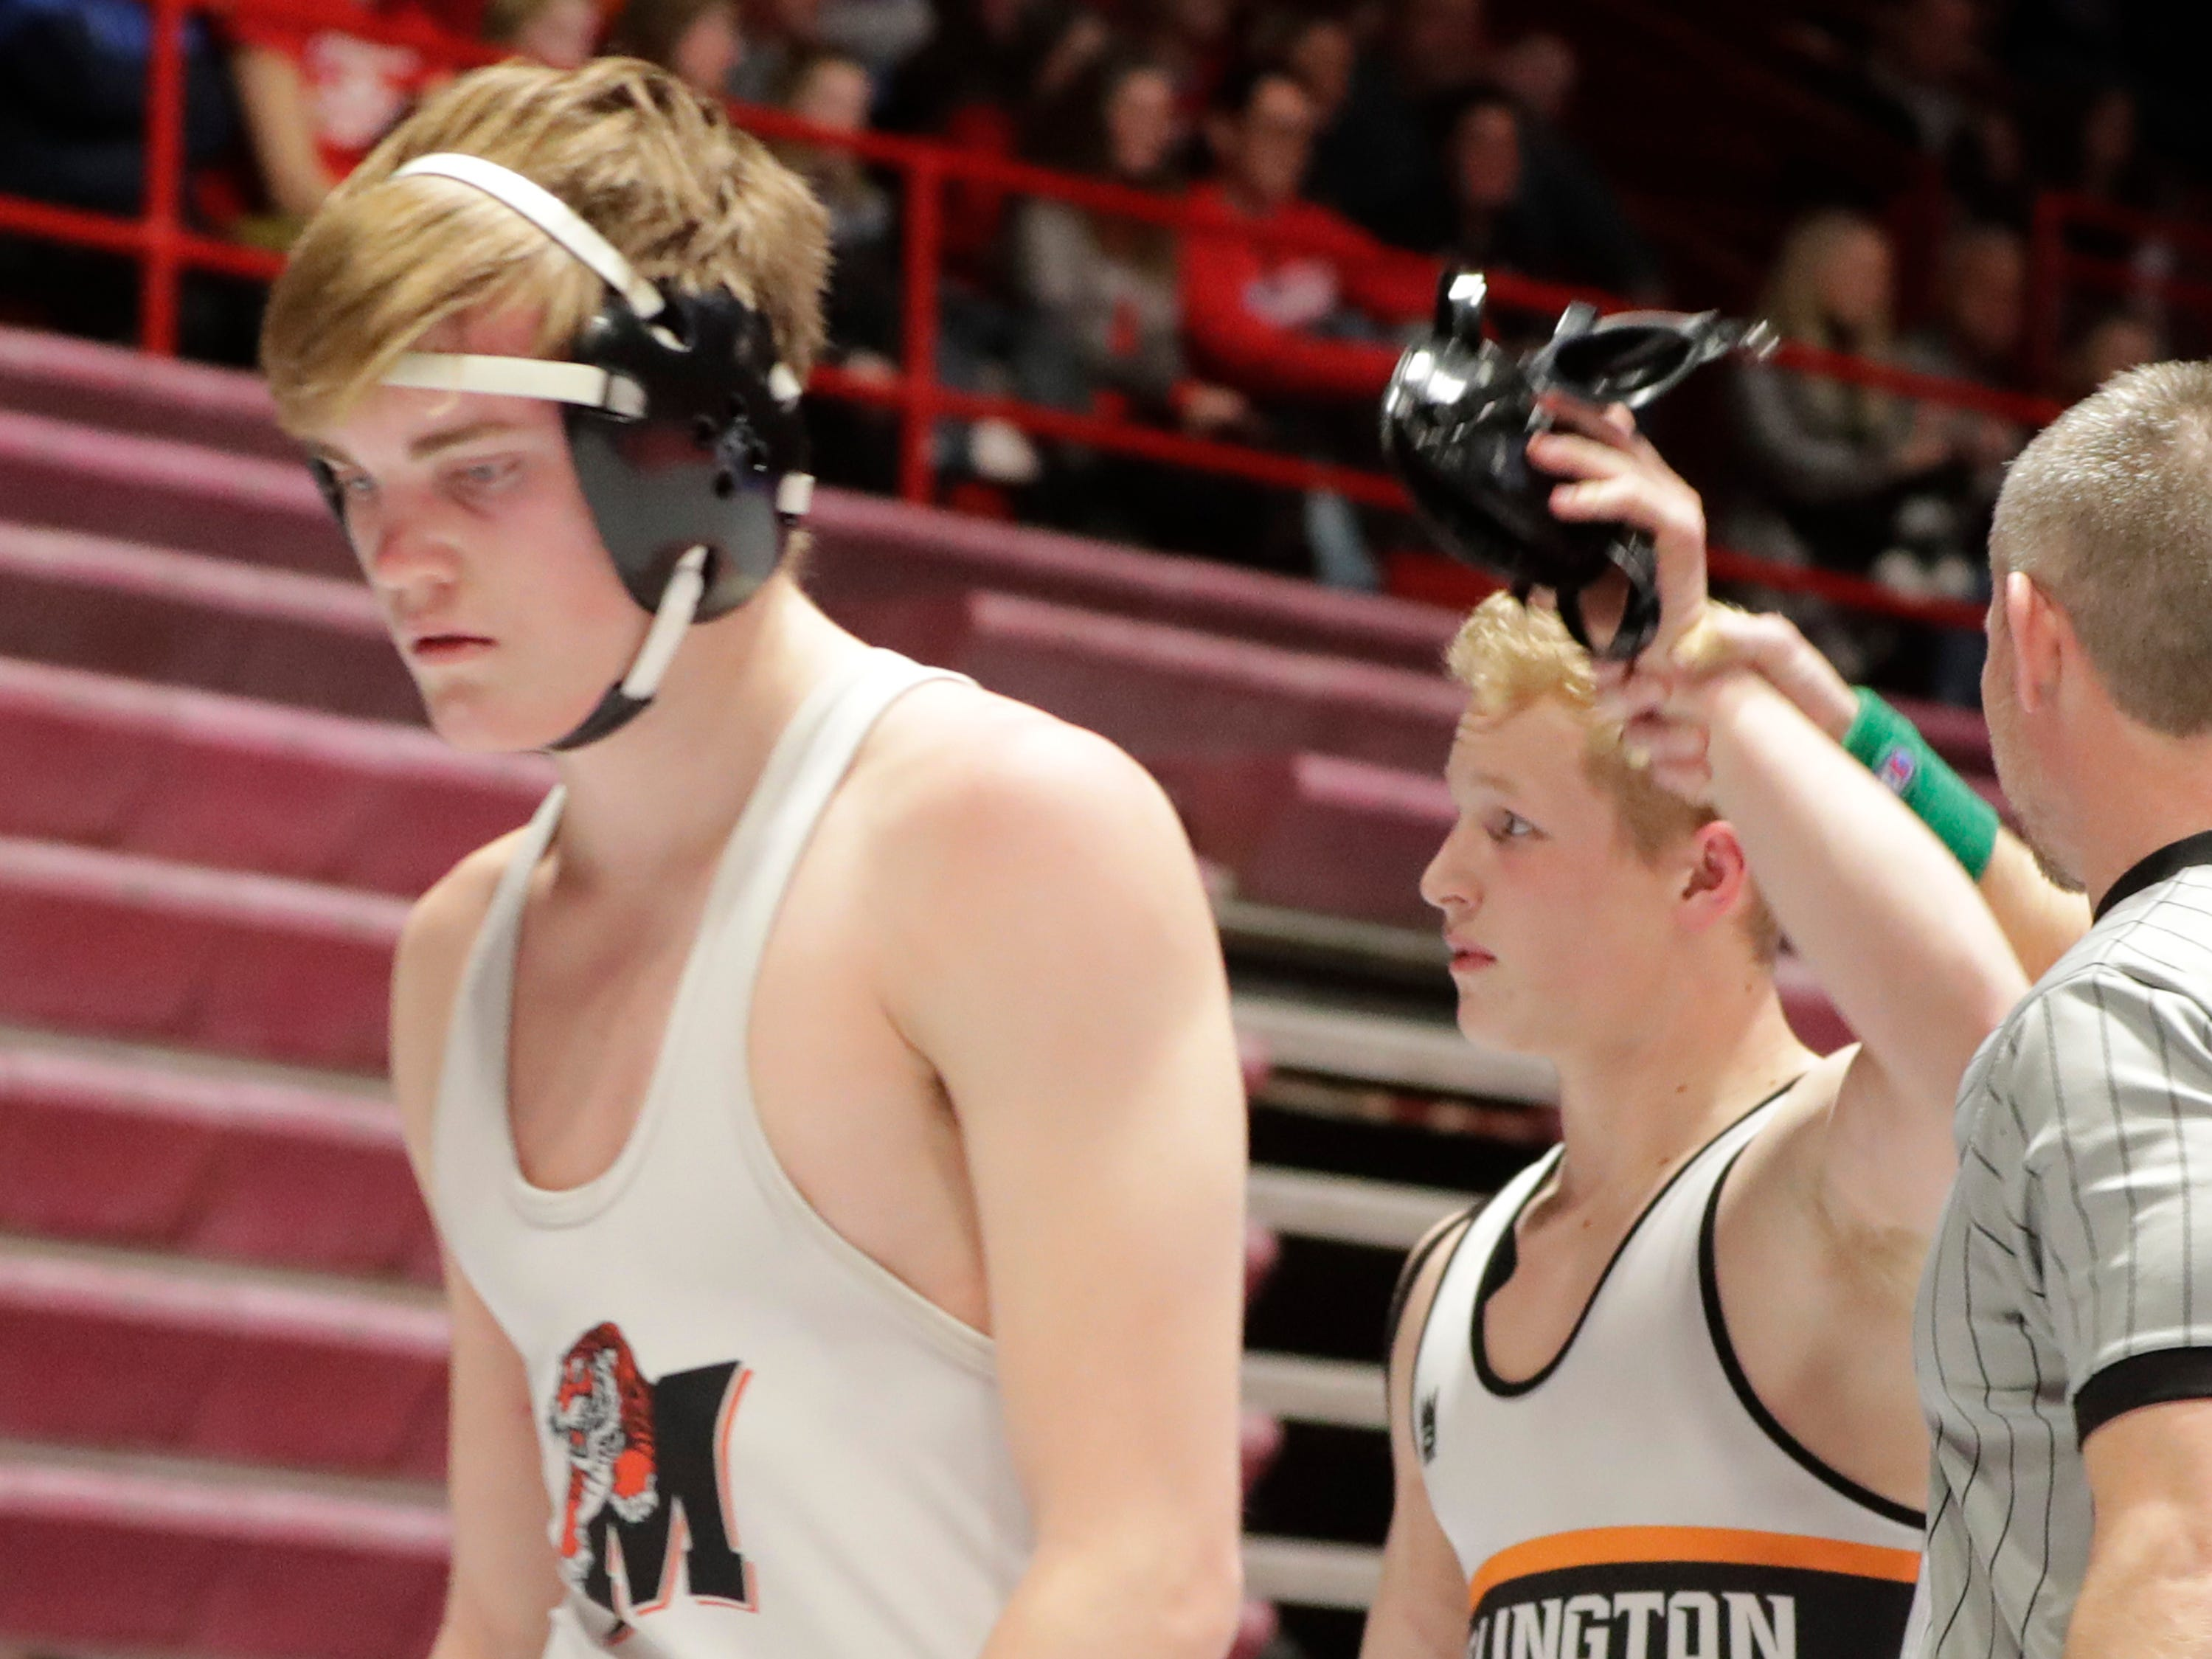 Burlington's Jake Skrundz, right, arm is raised in victory over Marshfield's Brenden Braund, in a 160-pound match, Friday, March 1, 2019, in Madison, Wis.